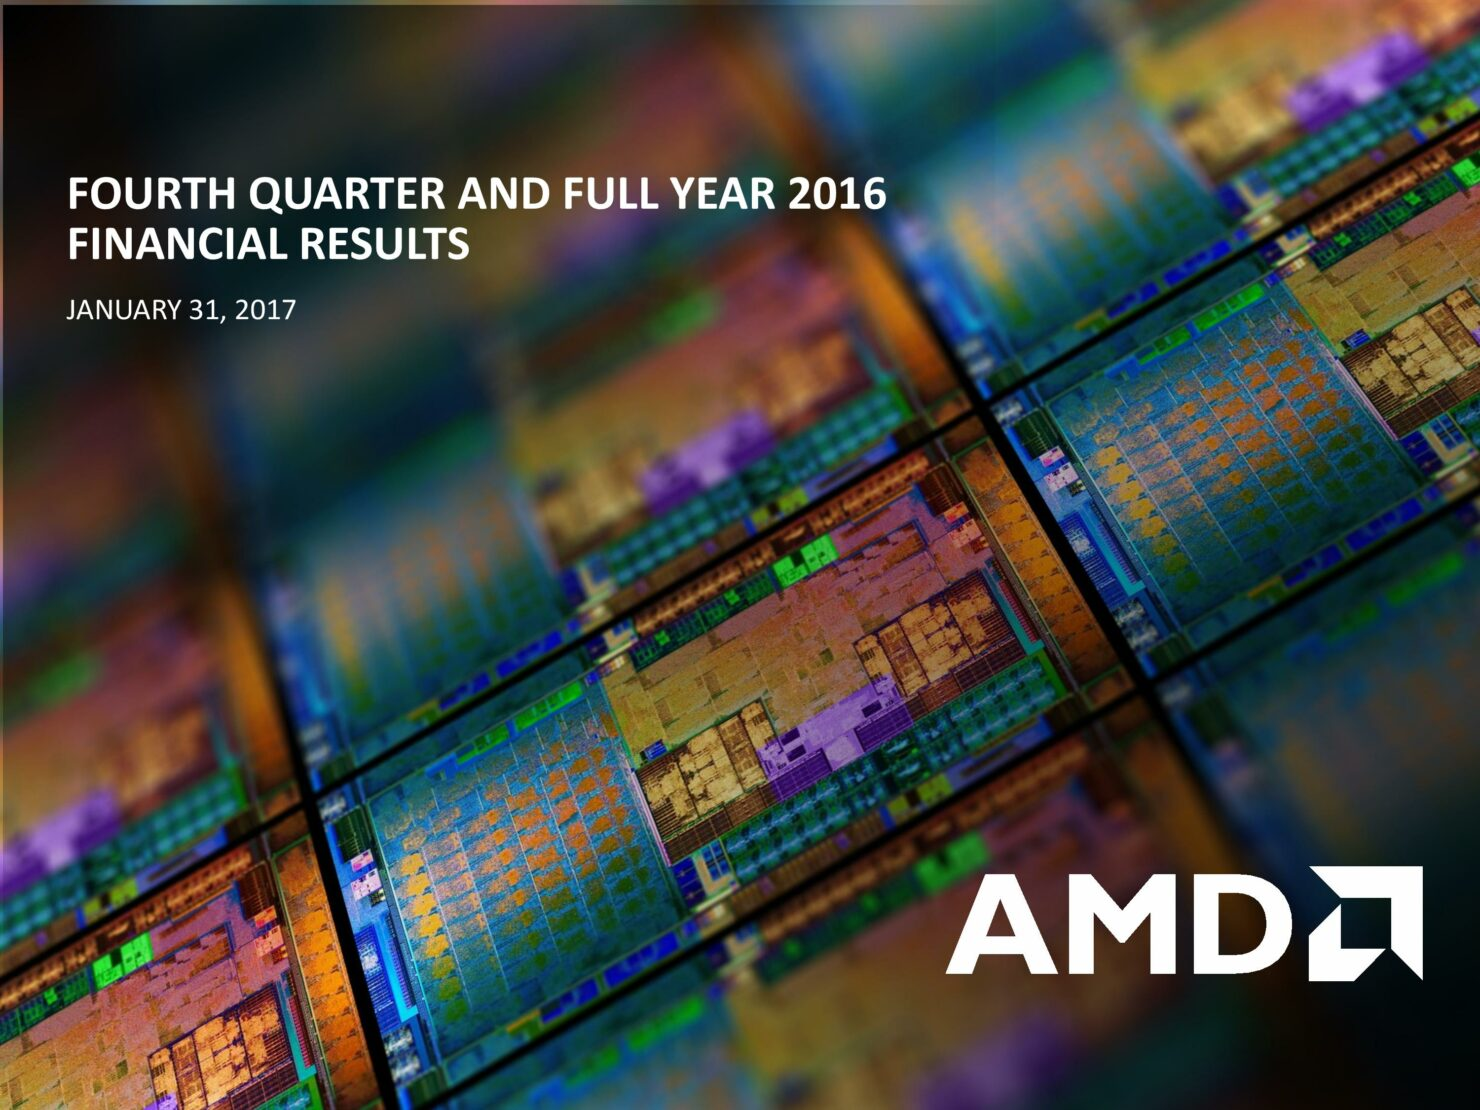 amd-cfo-commentary-slides-q4-16-page-001